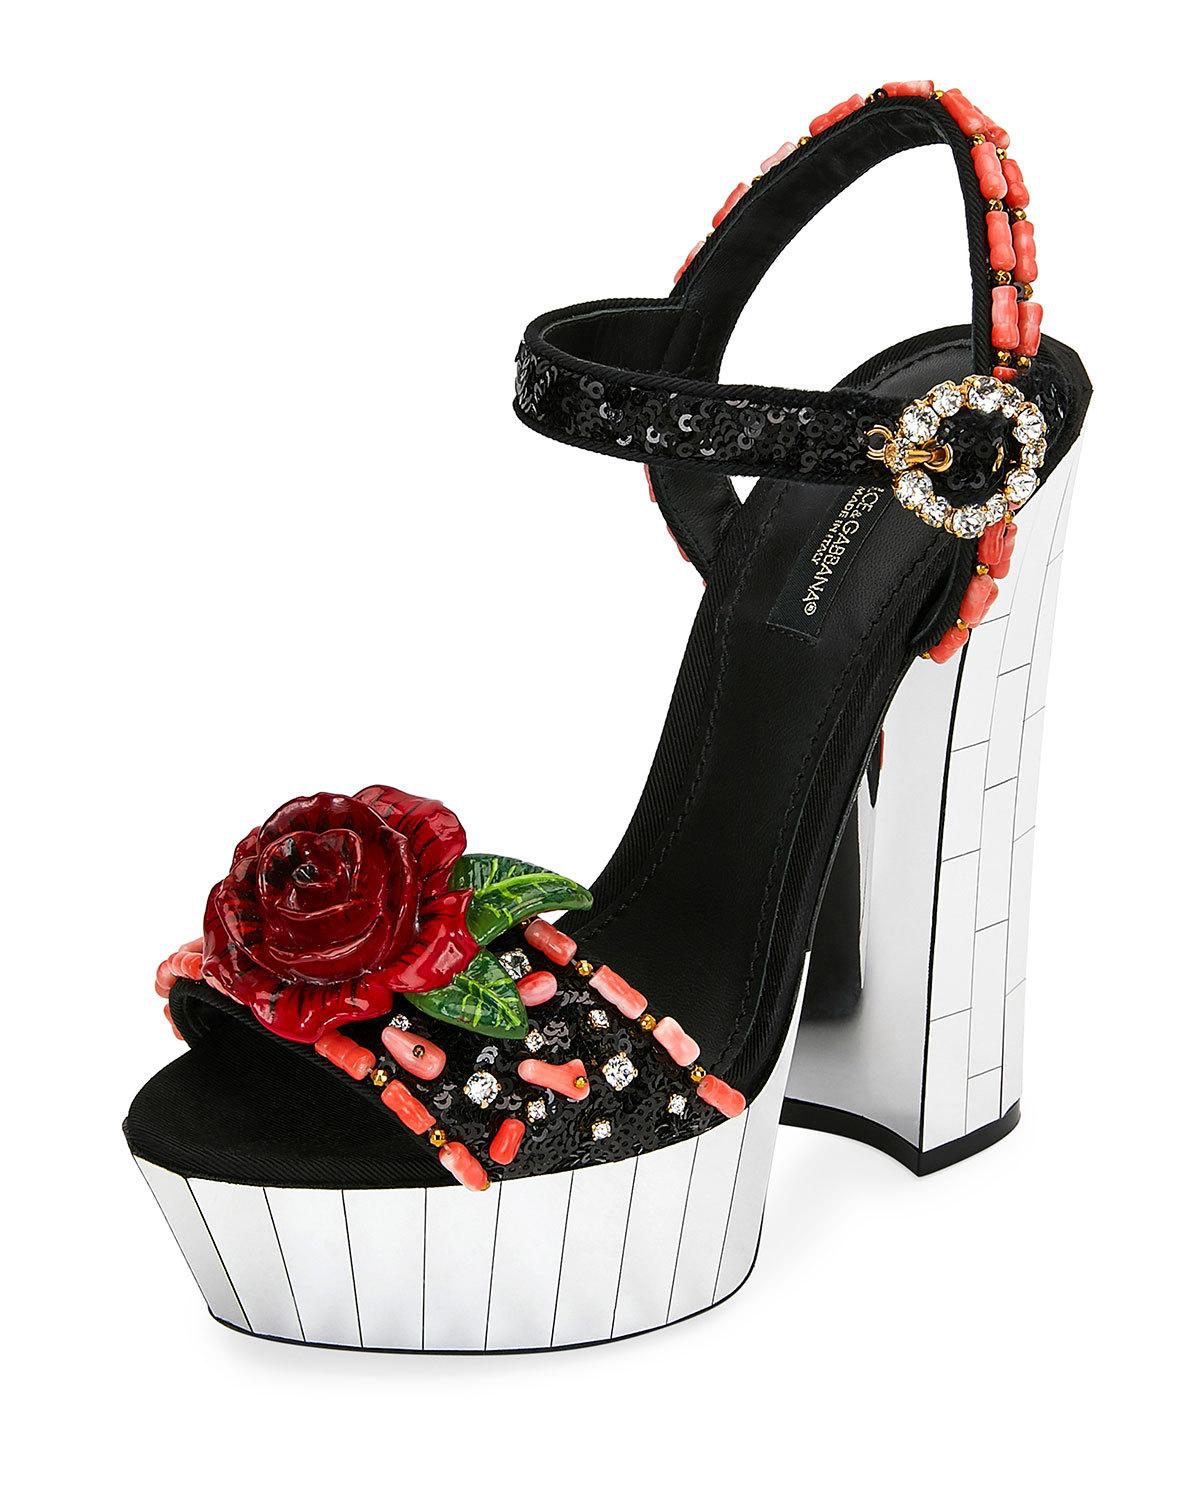 5e39b381ade Dolce   Gabbana Floral Embellished Canvas Platform Sandals In Black ...